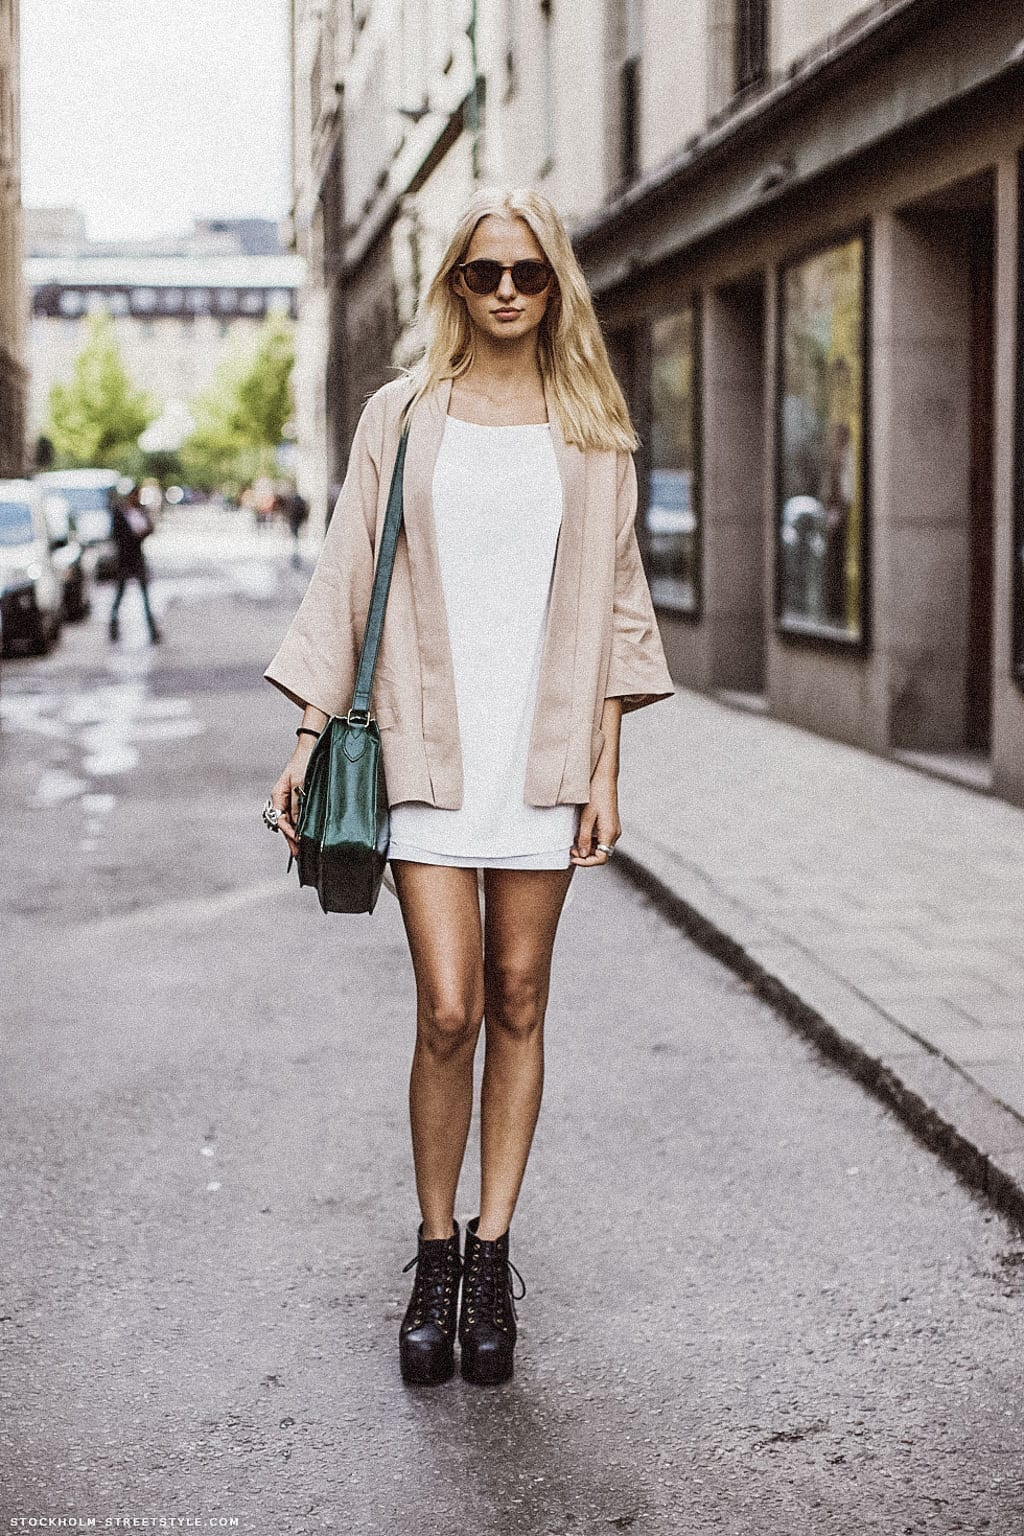 CK1607_Constantly-K-stockholm-streetstyle--2